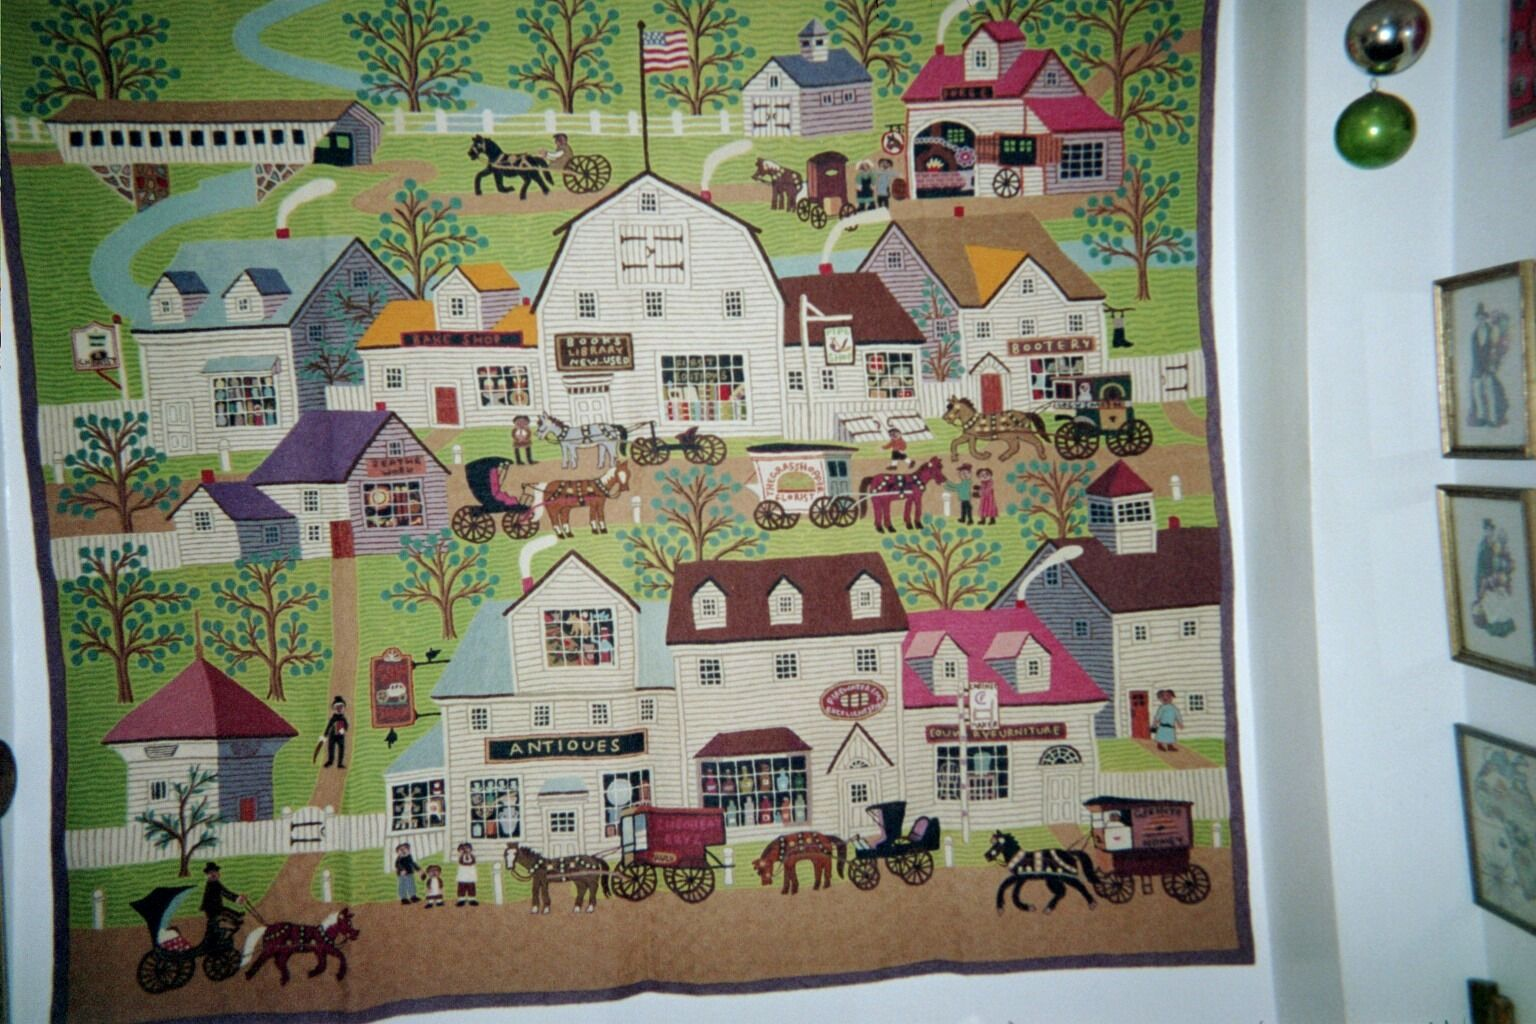 STEVE KANE QUILTS and FOLK ART